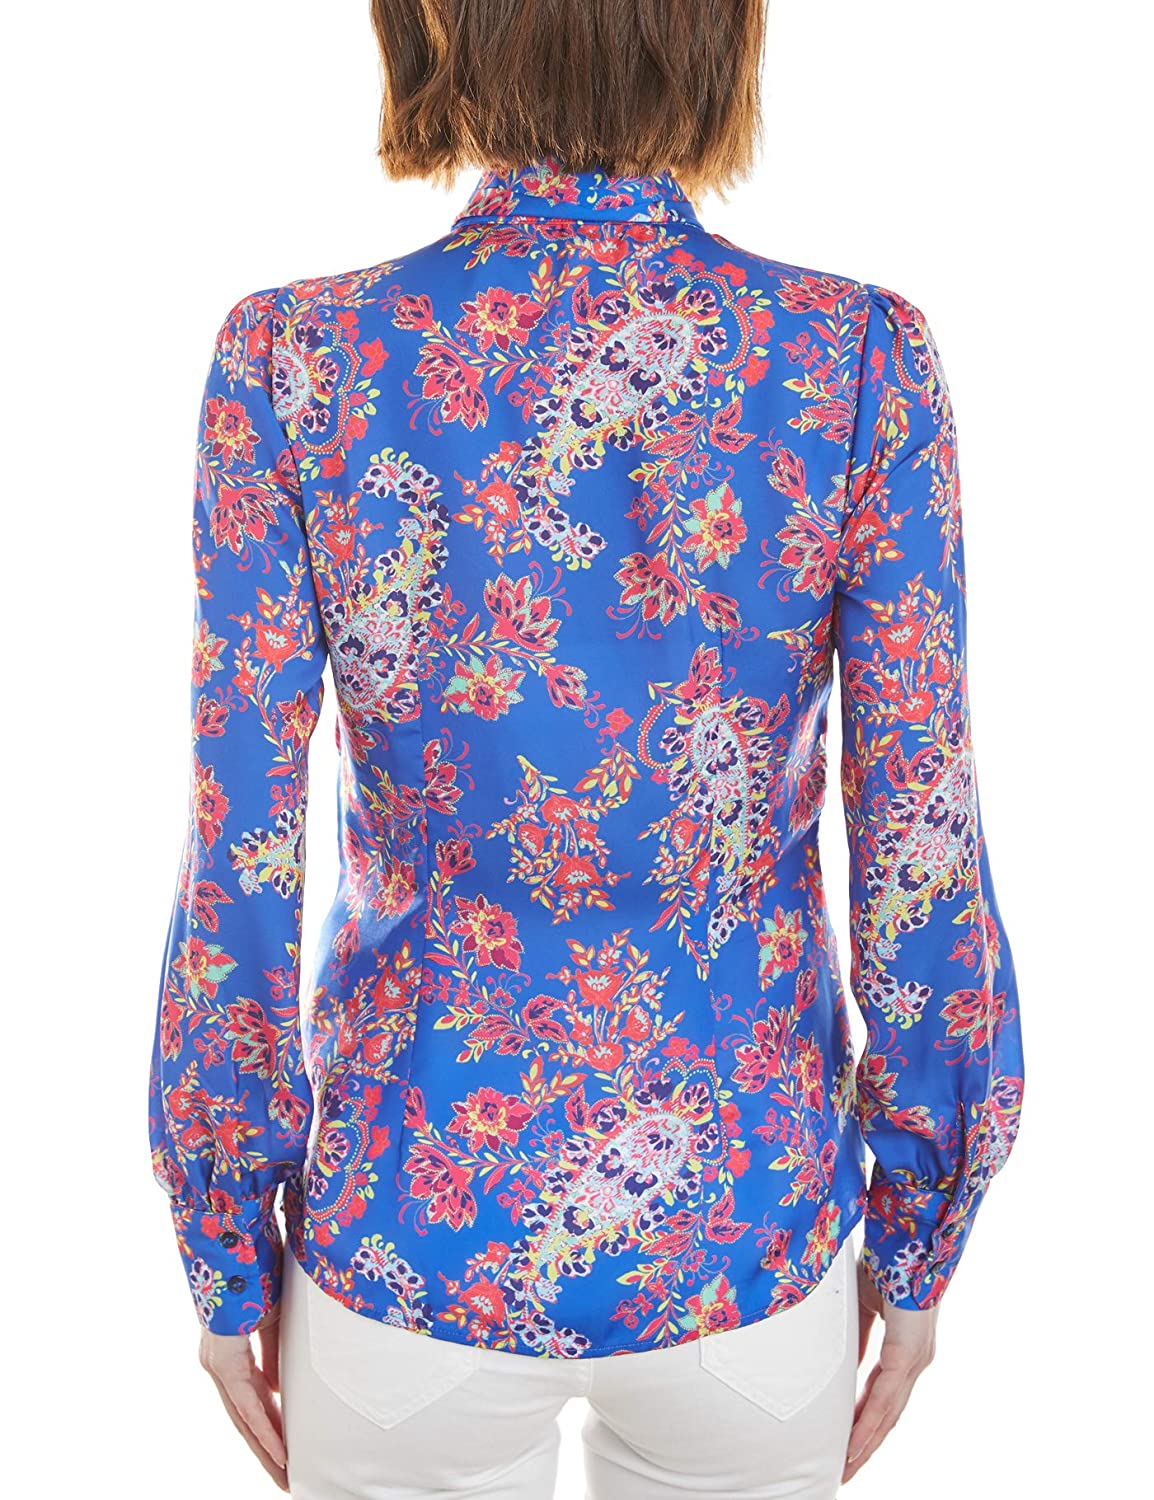 719c867491e6e HAWES   CURTIS Women s Blue   Red Paisley Fitted Shirt - Single Cuff - Pussy  Bow  Amazon.co.uk  Clothing